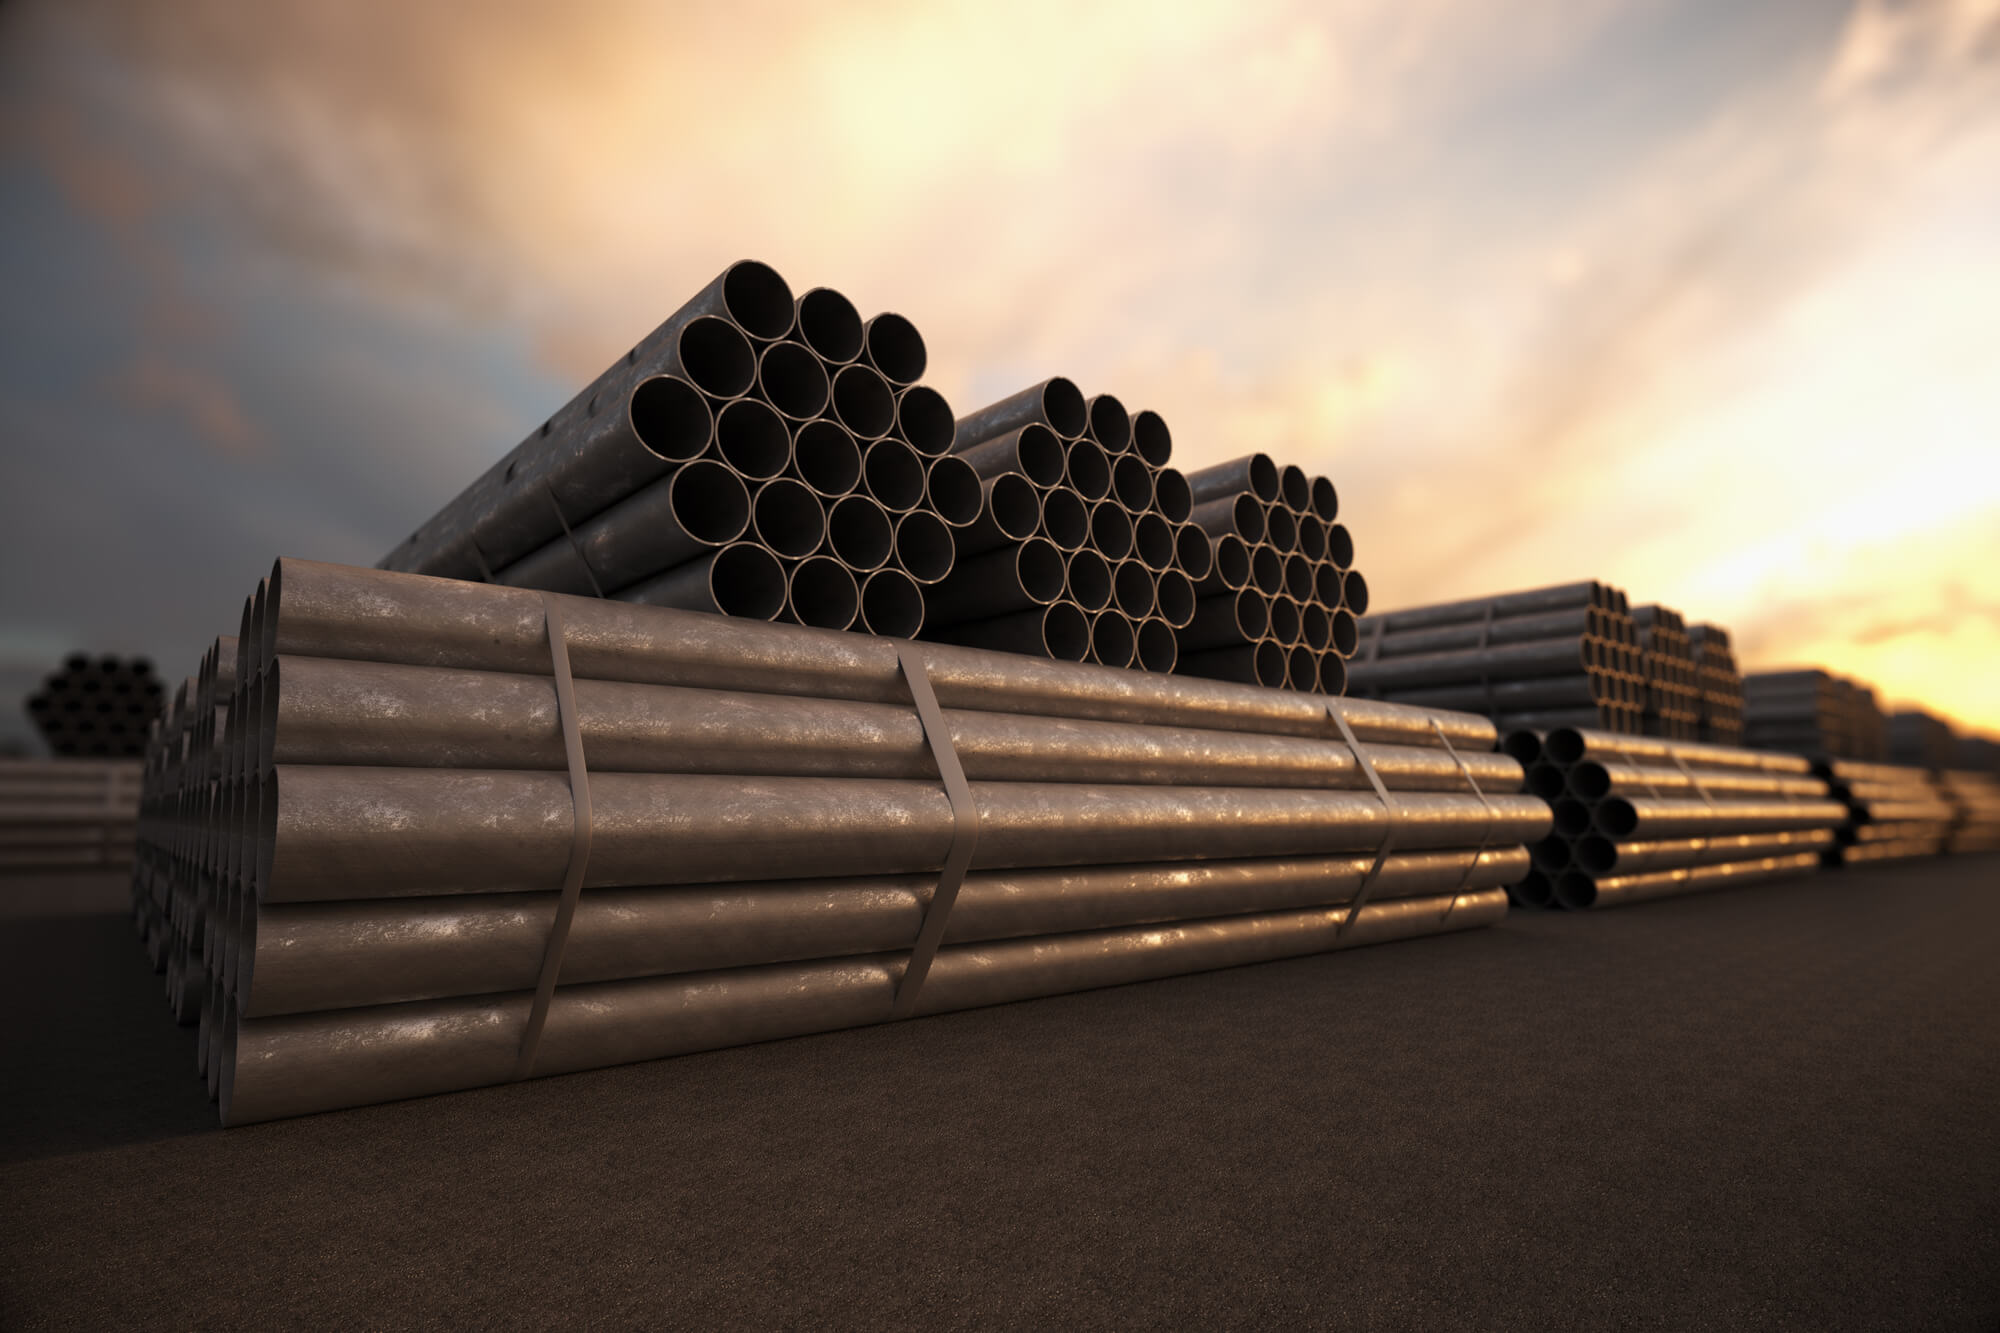 China is looking to get even with the new tariff for steel pipes bound for the U.S.